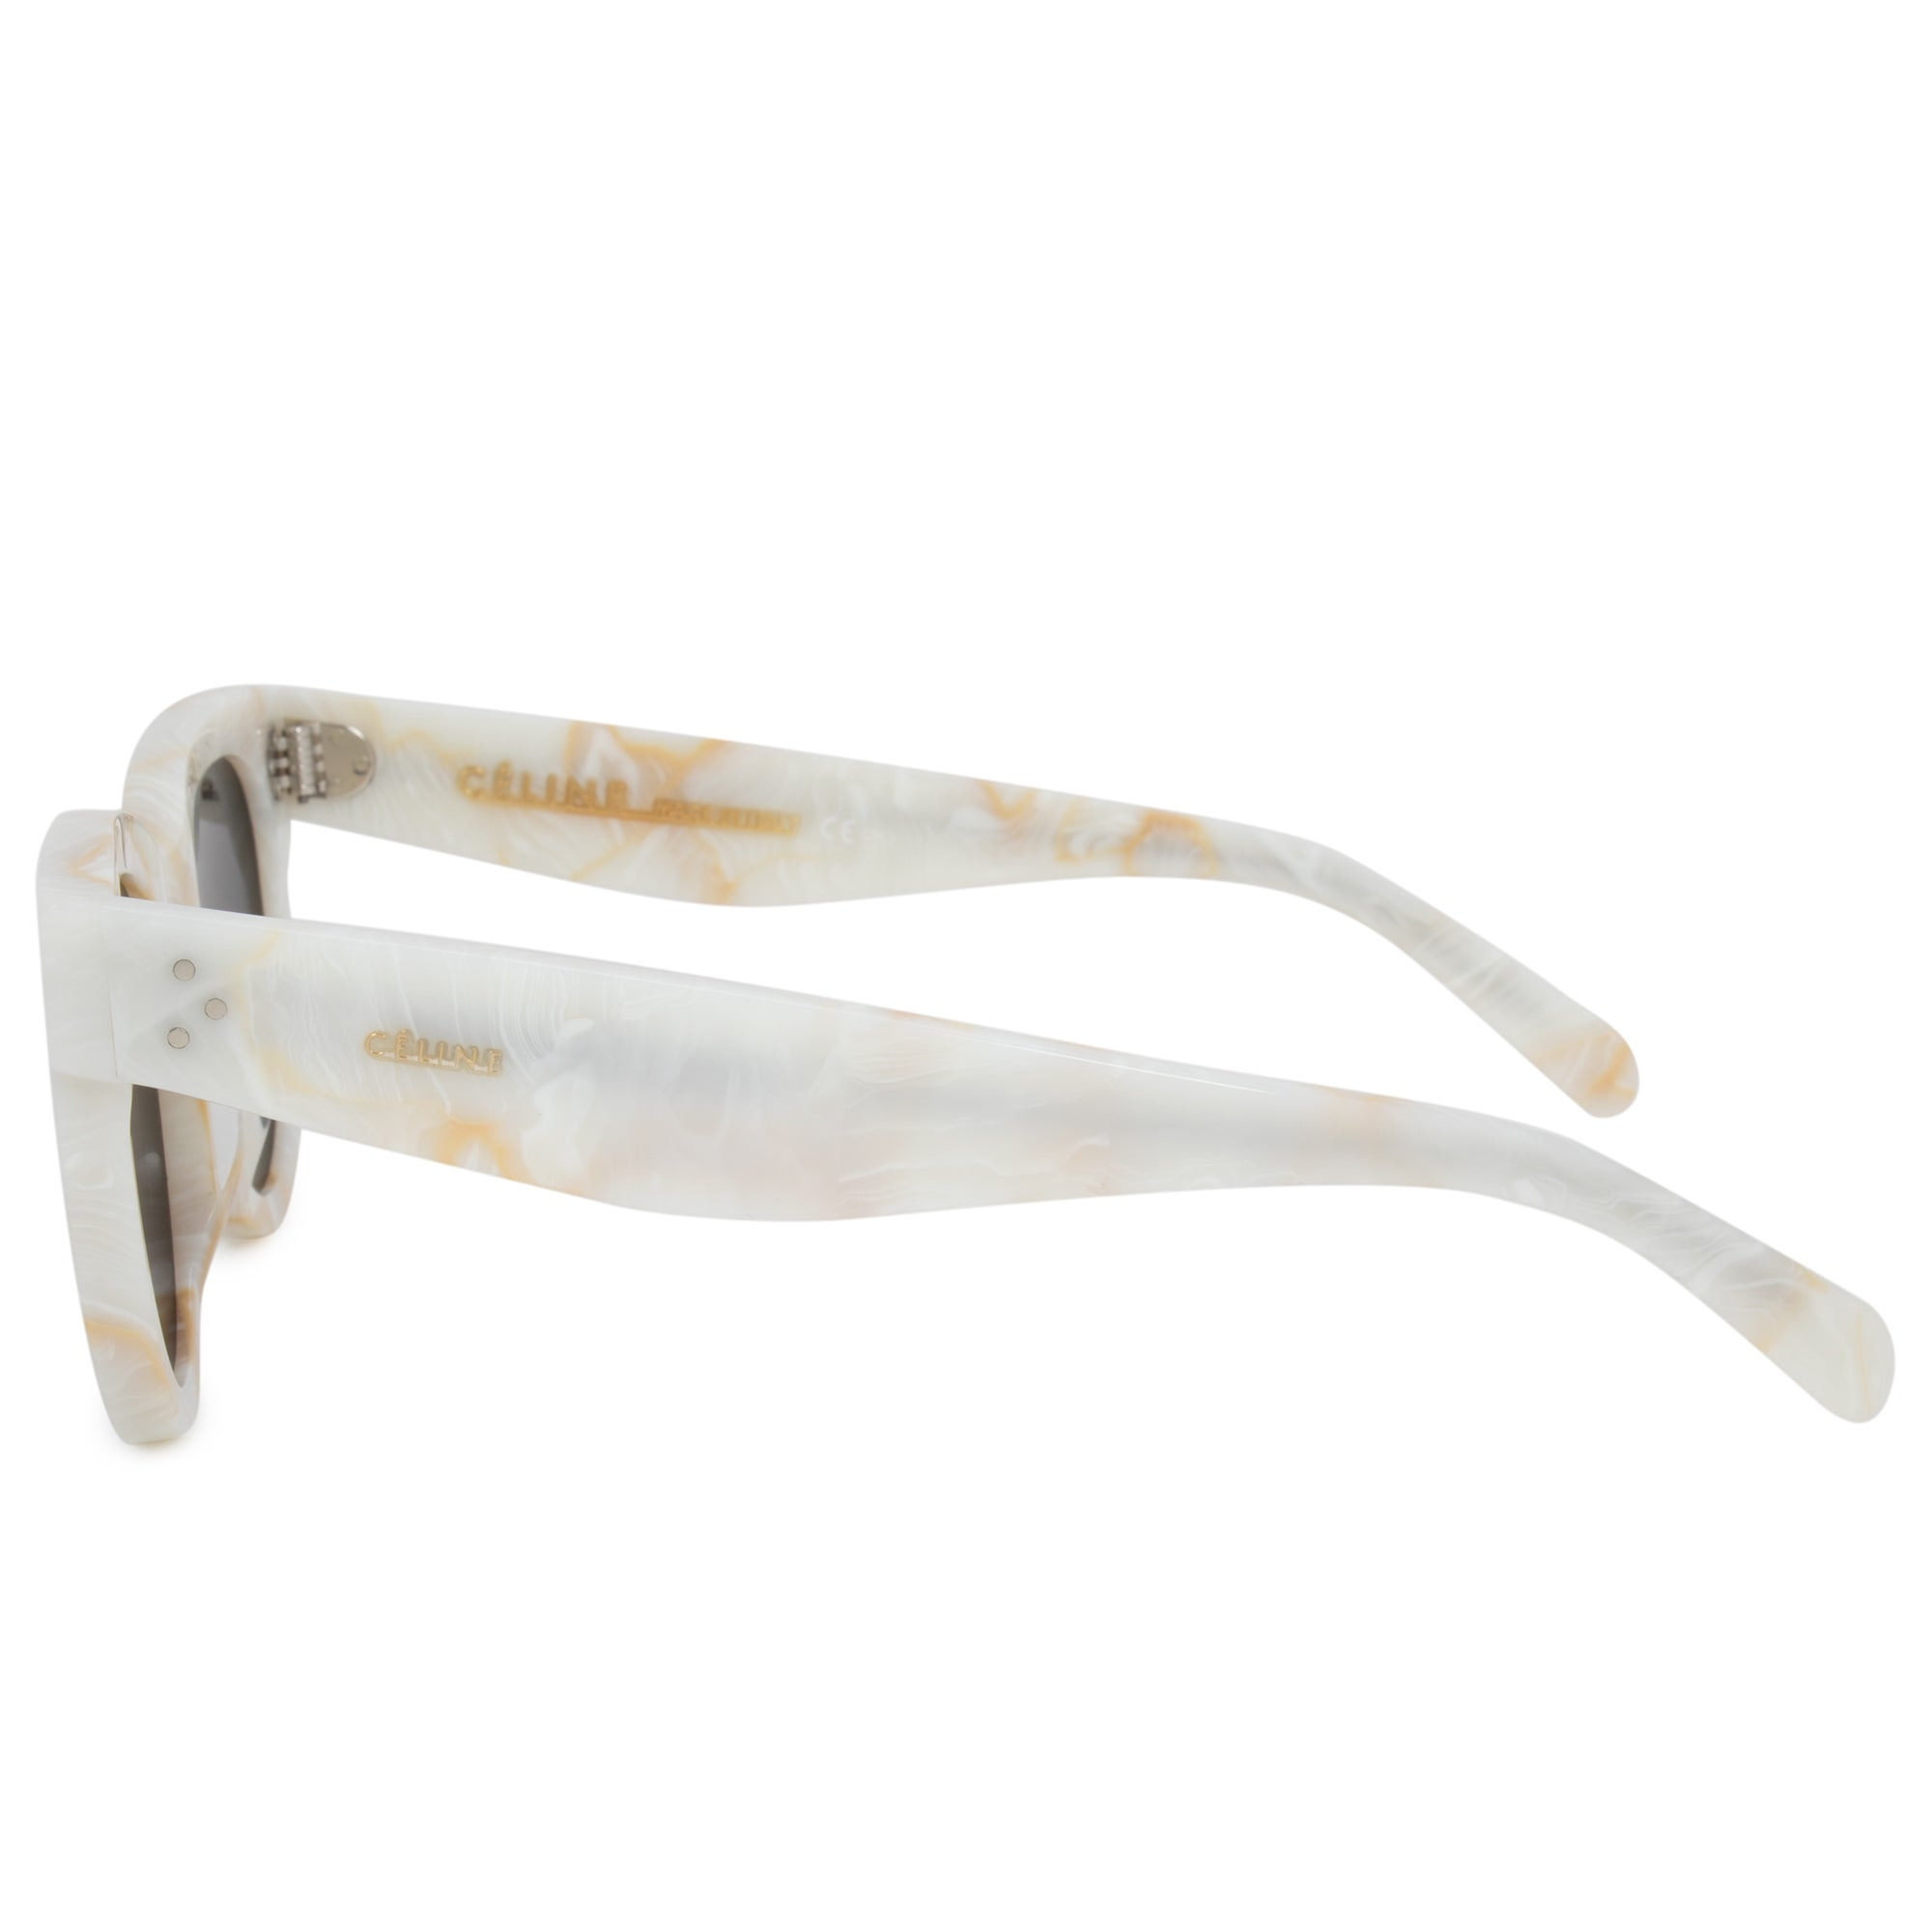 eca8f326db70 Shop Celine Baby Audrey Cat Eye Sunglasses 41053 S 21J NR 47 - On Sale -  Free Shipping Today - Overstock - 23138872